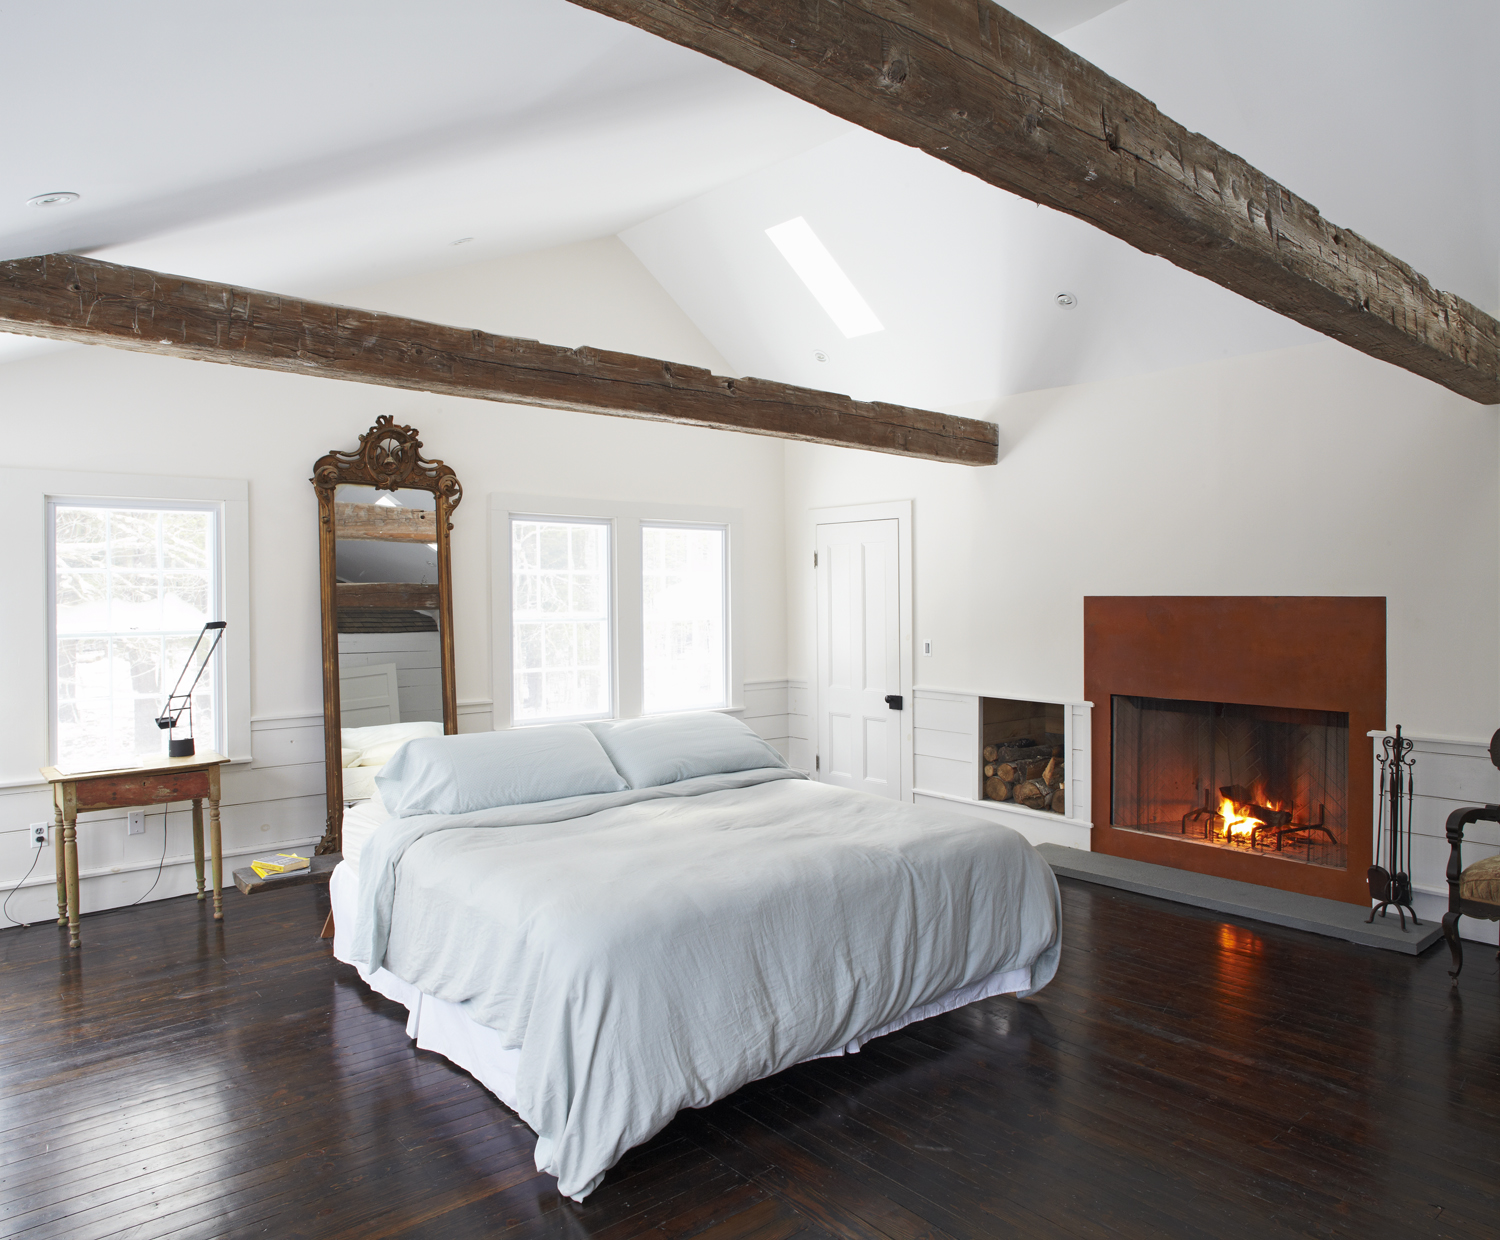 Master bedroom fireplace and antique ceiling beams in the Floating Farmhouse Catskills vacation rental in upstate New York.